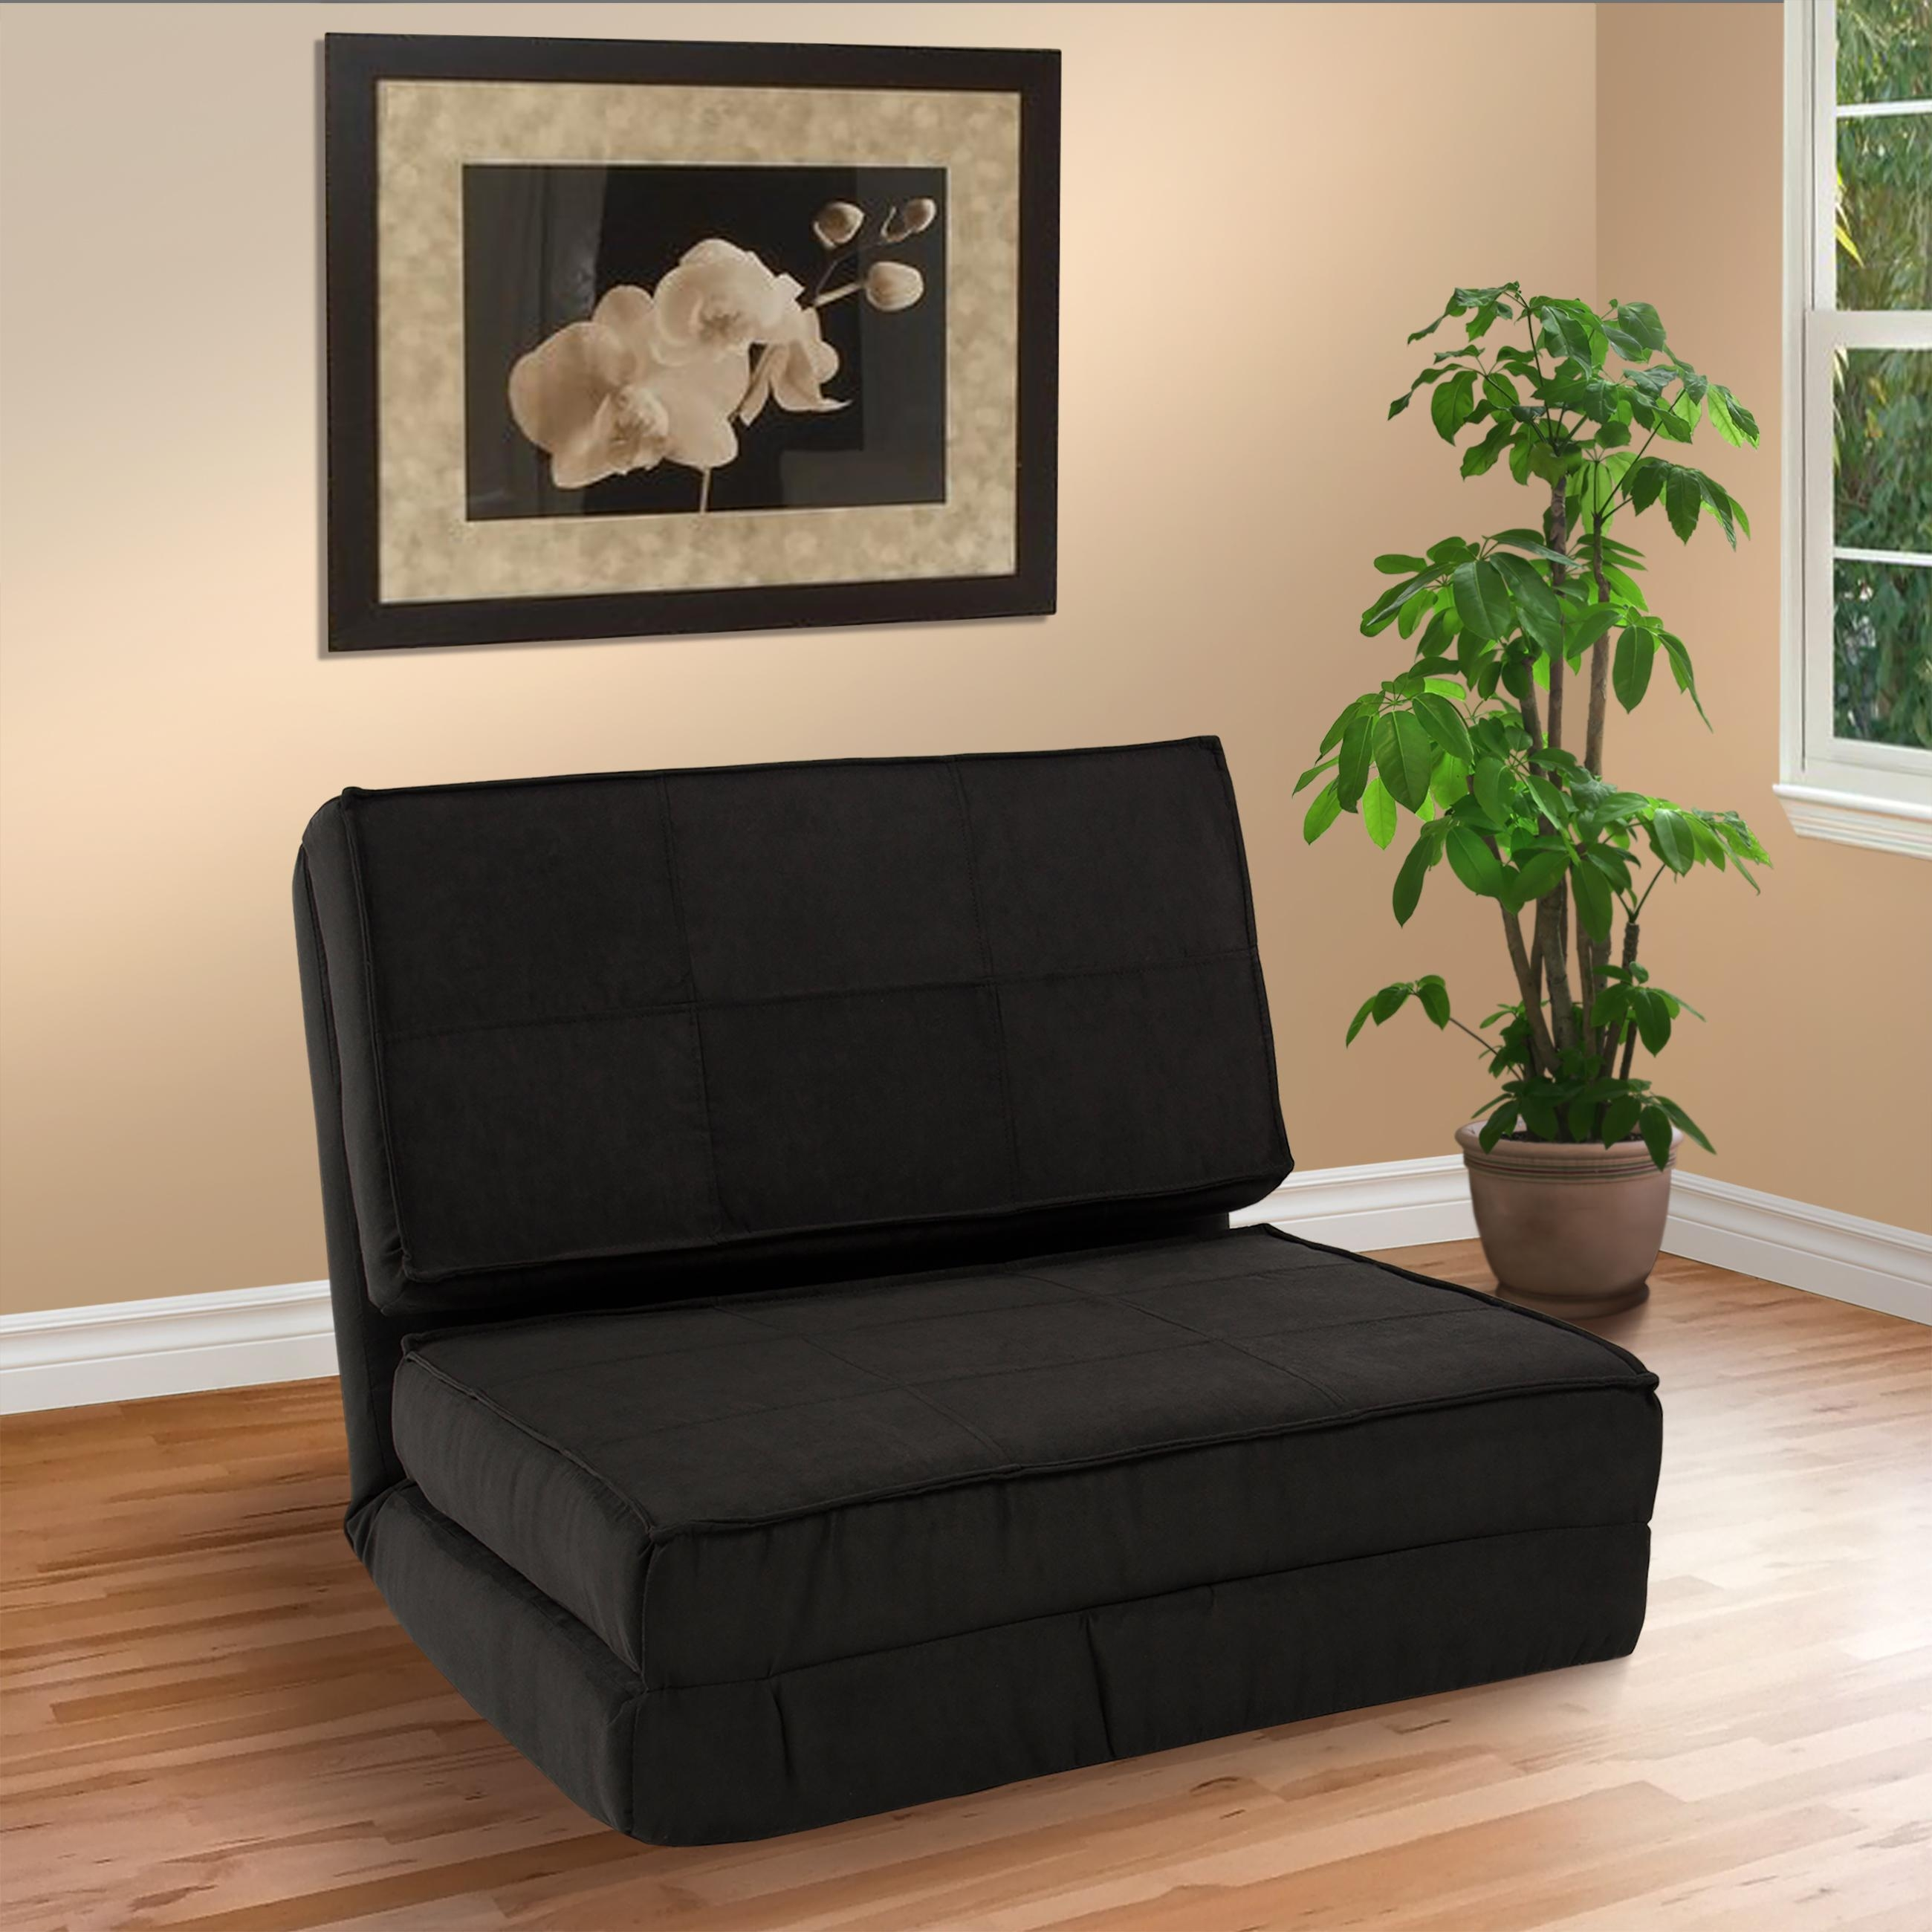 Best Choice Products Convertible Sleeper Chair Bed (Black In Collapsible Sofas (Image 3 of 20)